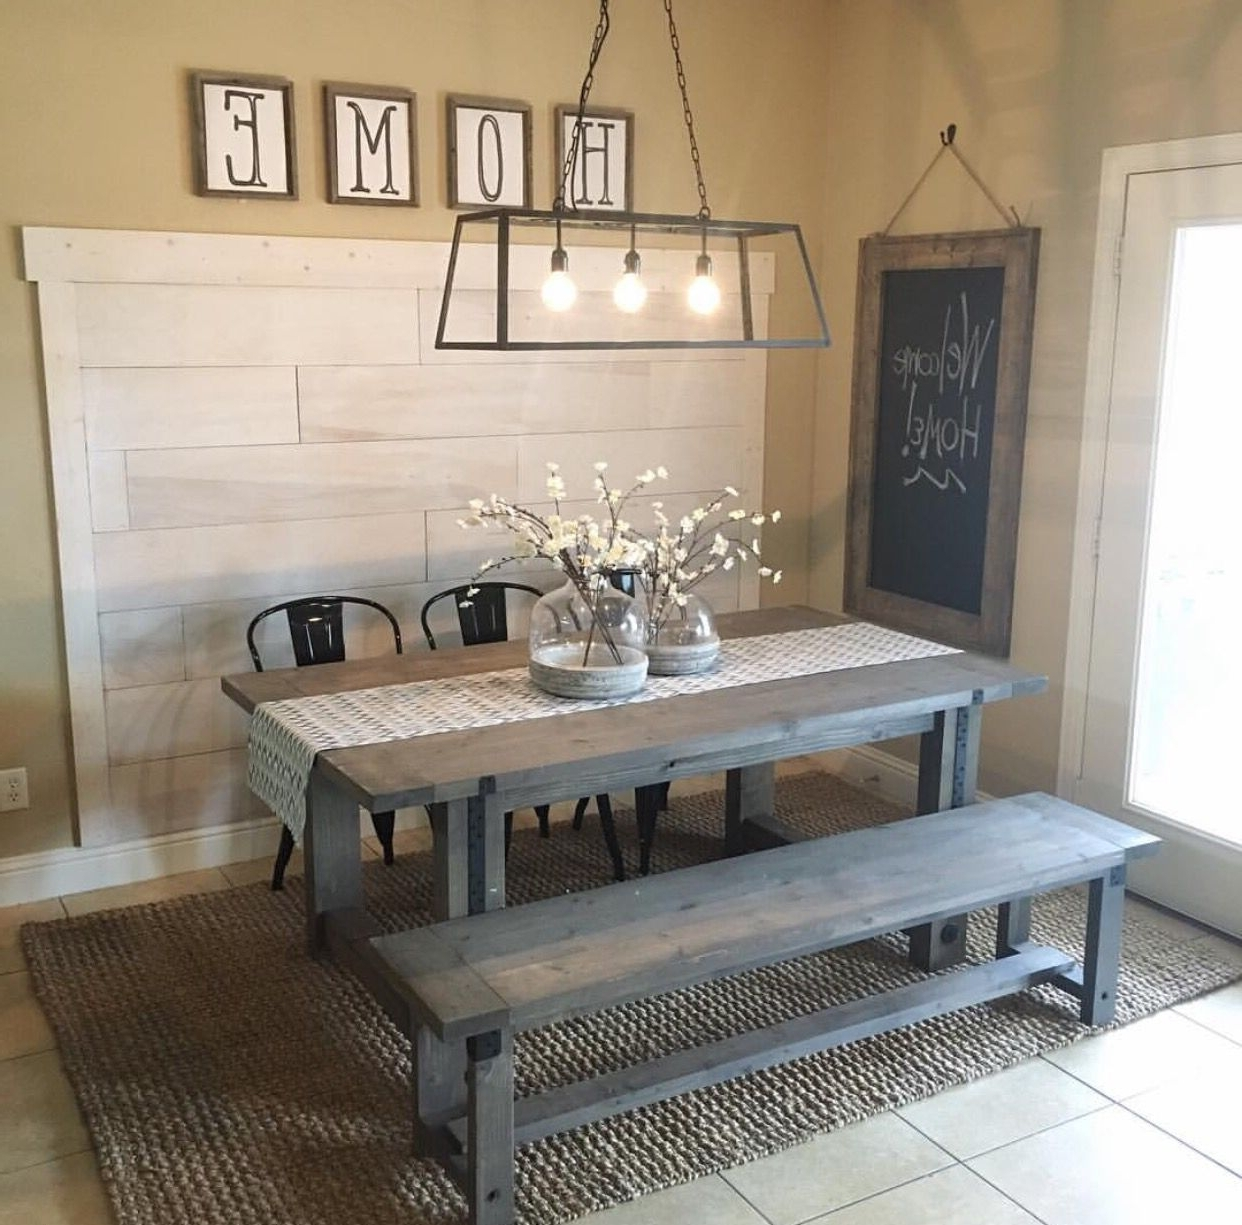 House, Home Decor And Home Regarding Dining Tables Lighting (Gallery 13 of 25)